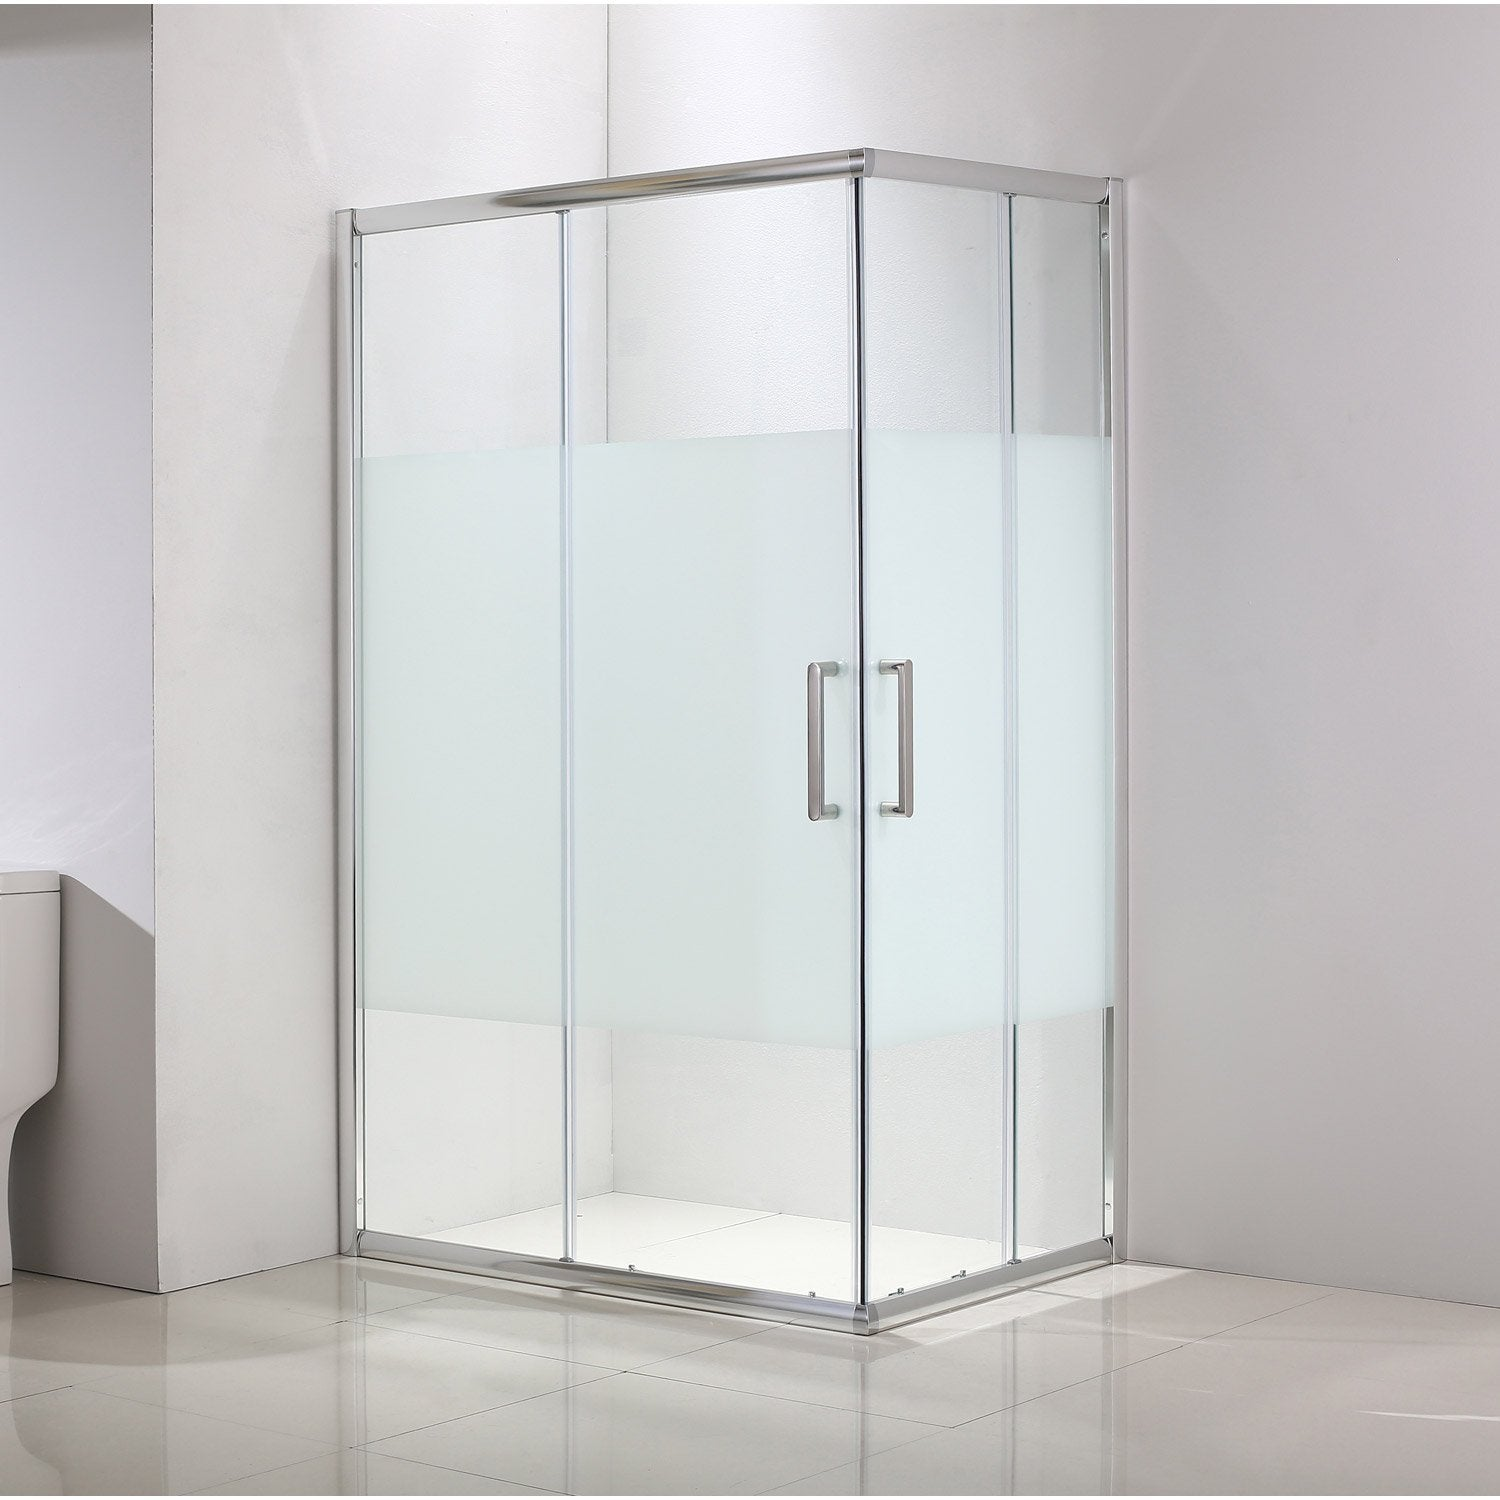 Porte de douche coulissante angle rectangle 90 x 70 cm - Porte en verre leroy merlin ...